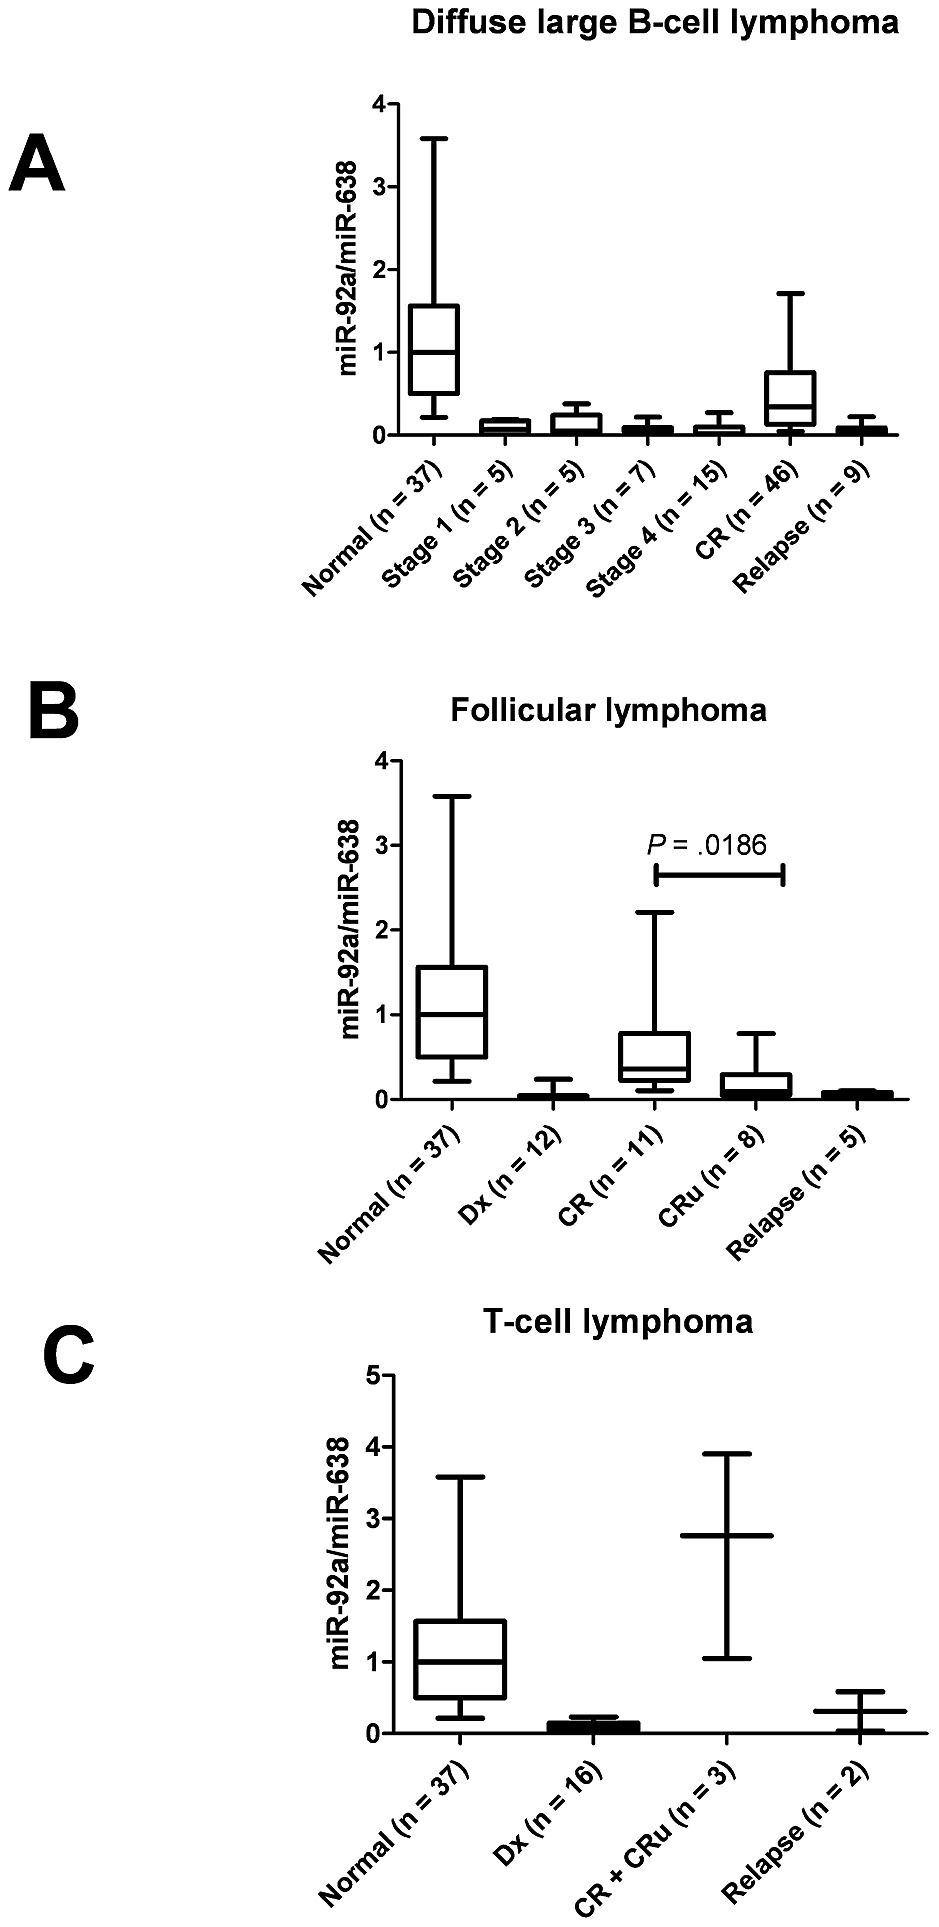 hight resolution of plasma mir 92a value mir 92a mir 638 in patients with non hodgkin s lymphoma at various stages